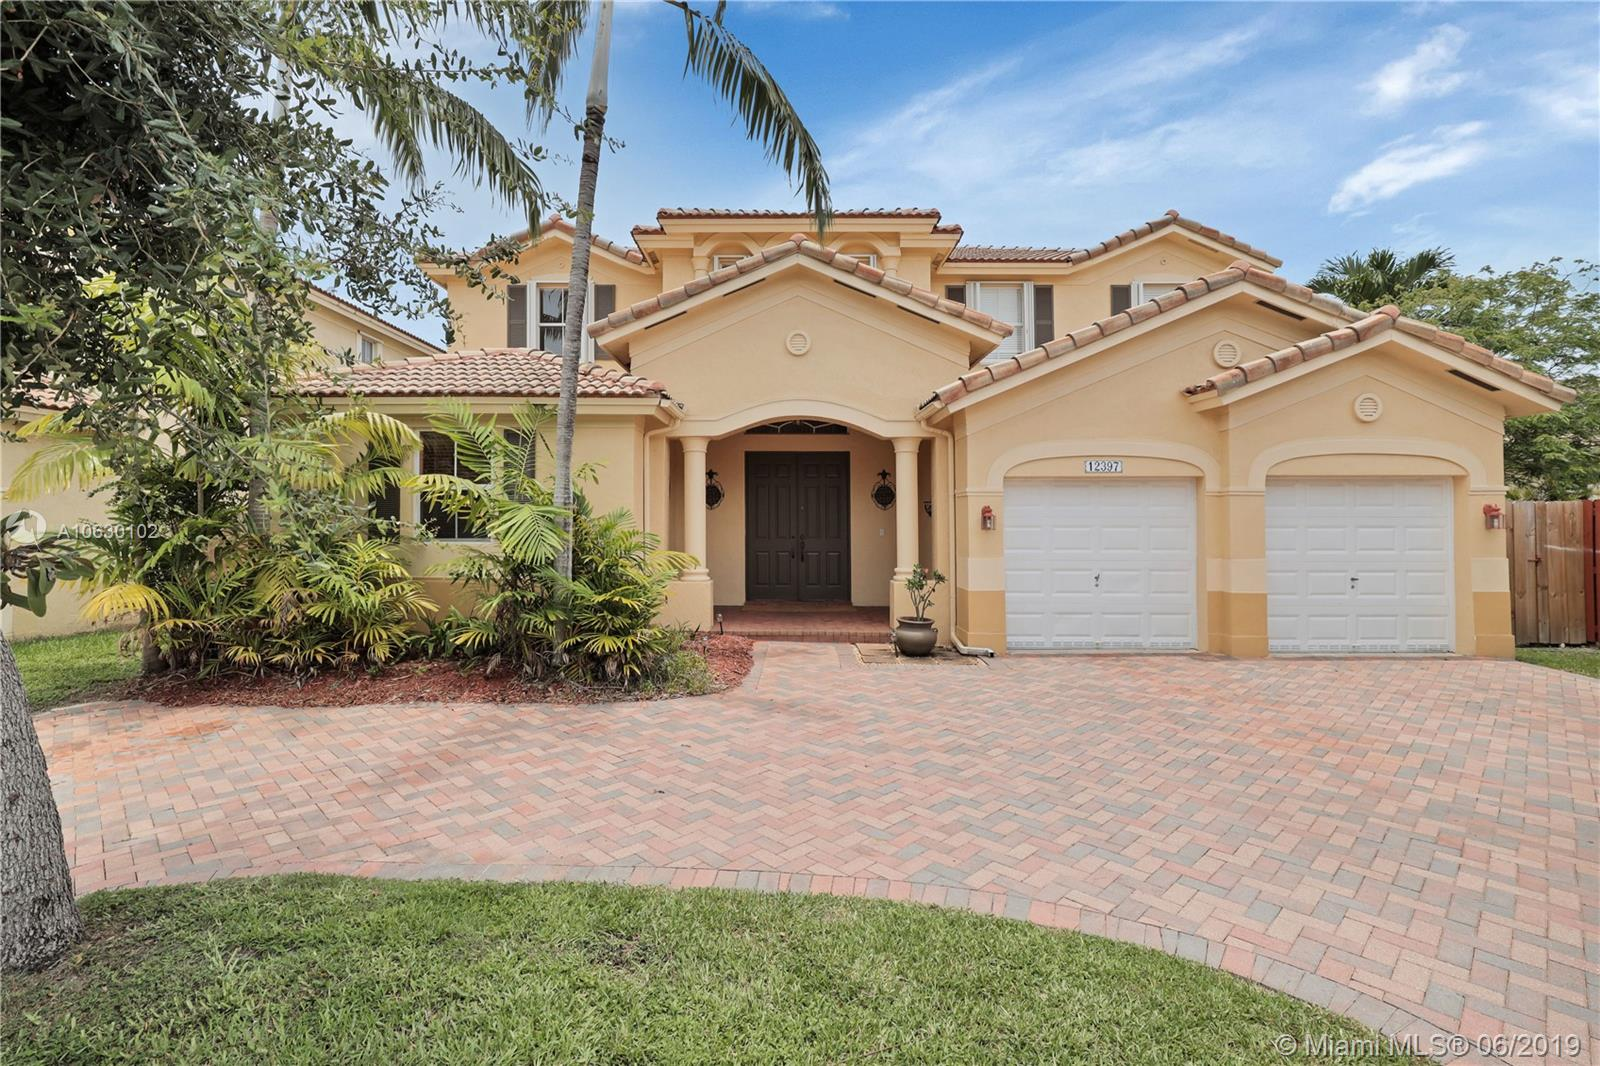 12397 SW 123rd Ct, Kendall, Florida